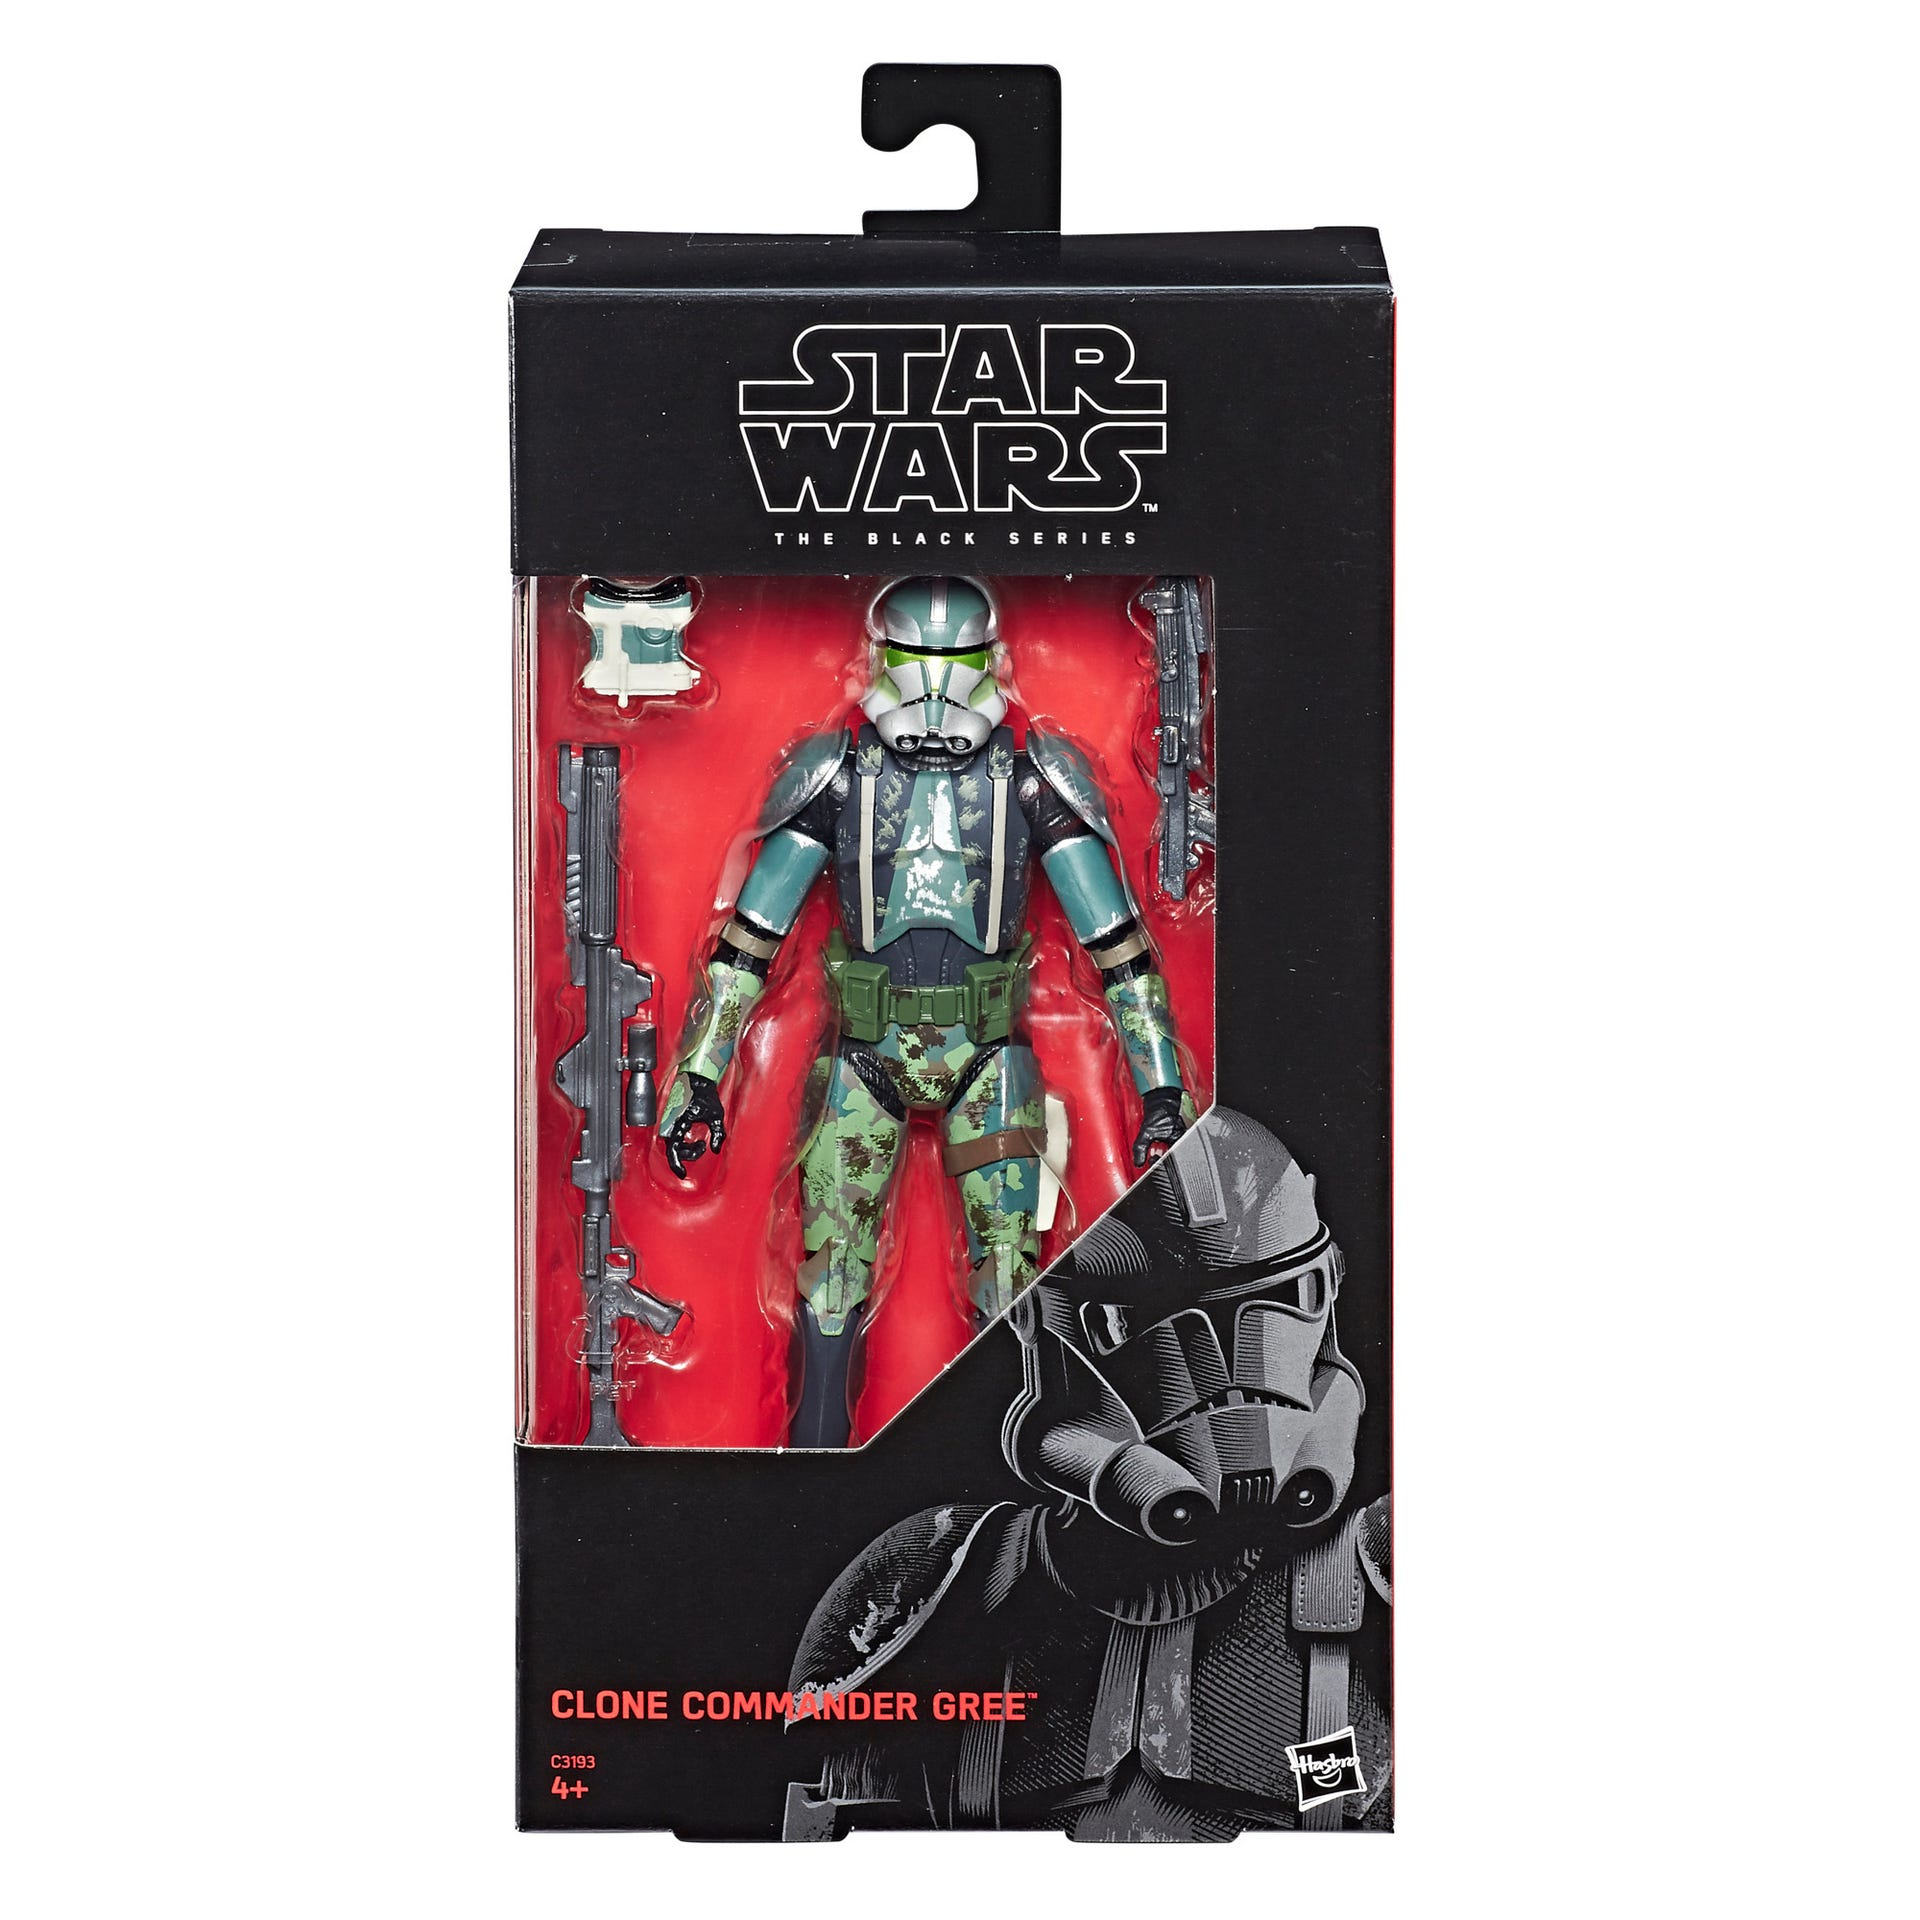 Star Wars The Black Series Commander Gree Action Figure 15cm  C3193E480 5010993731756